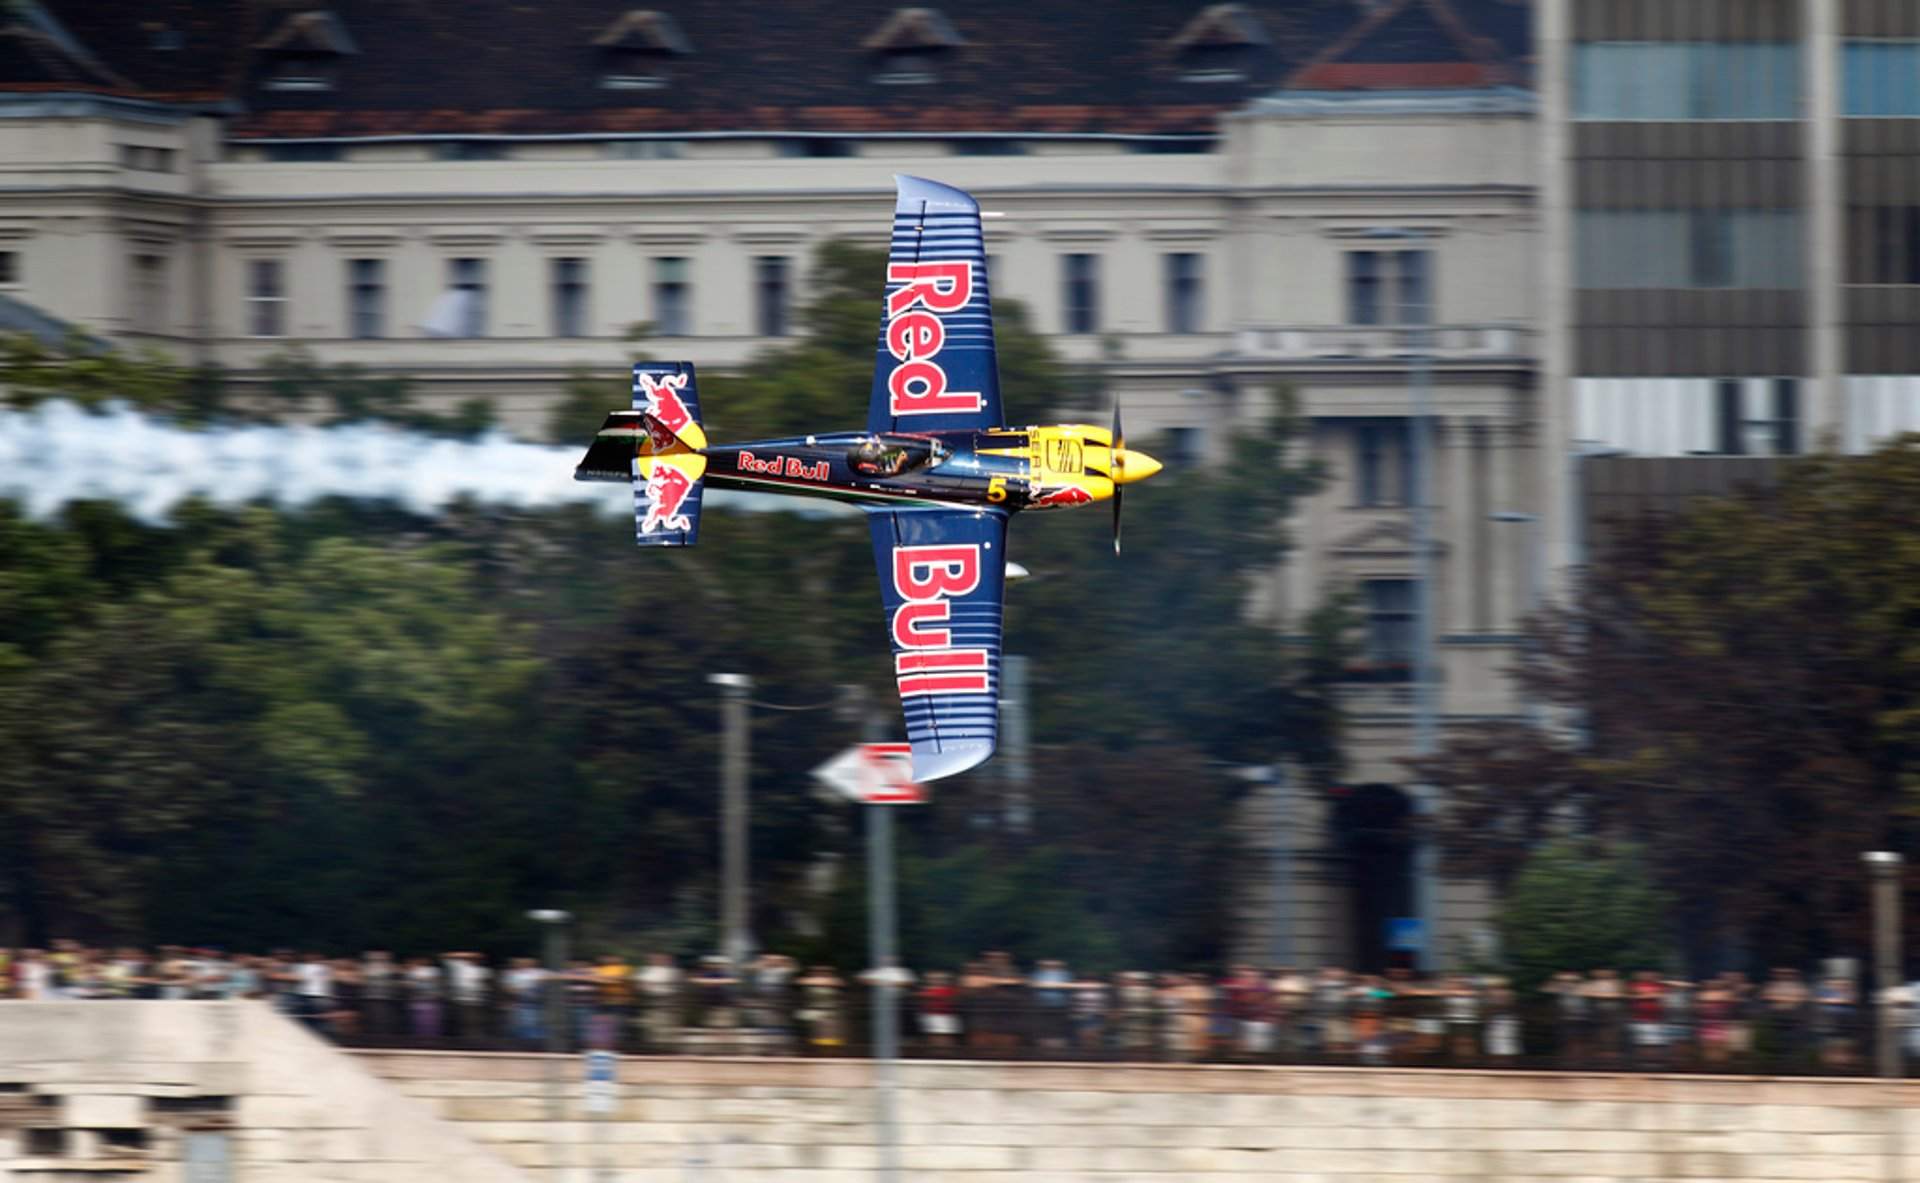 The Red Bull Air Race in Hungary - Best Season